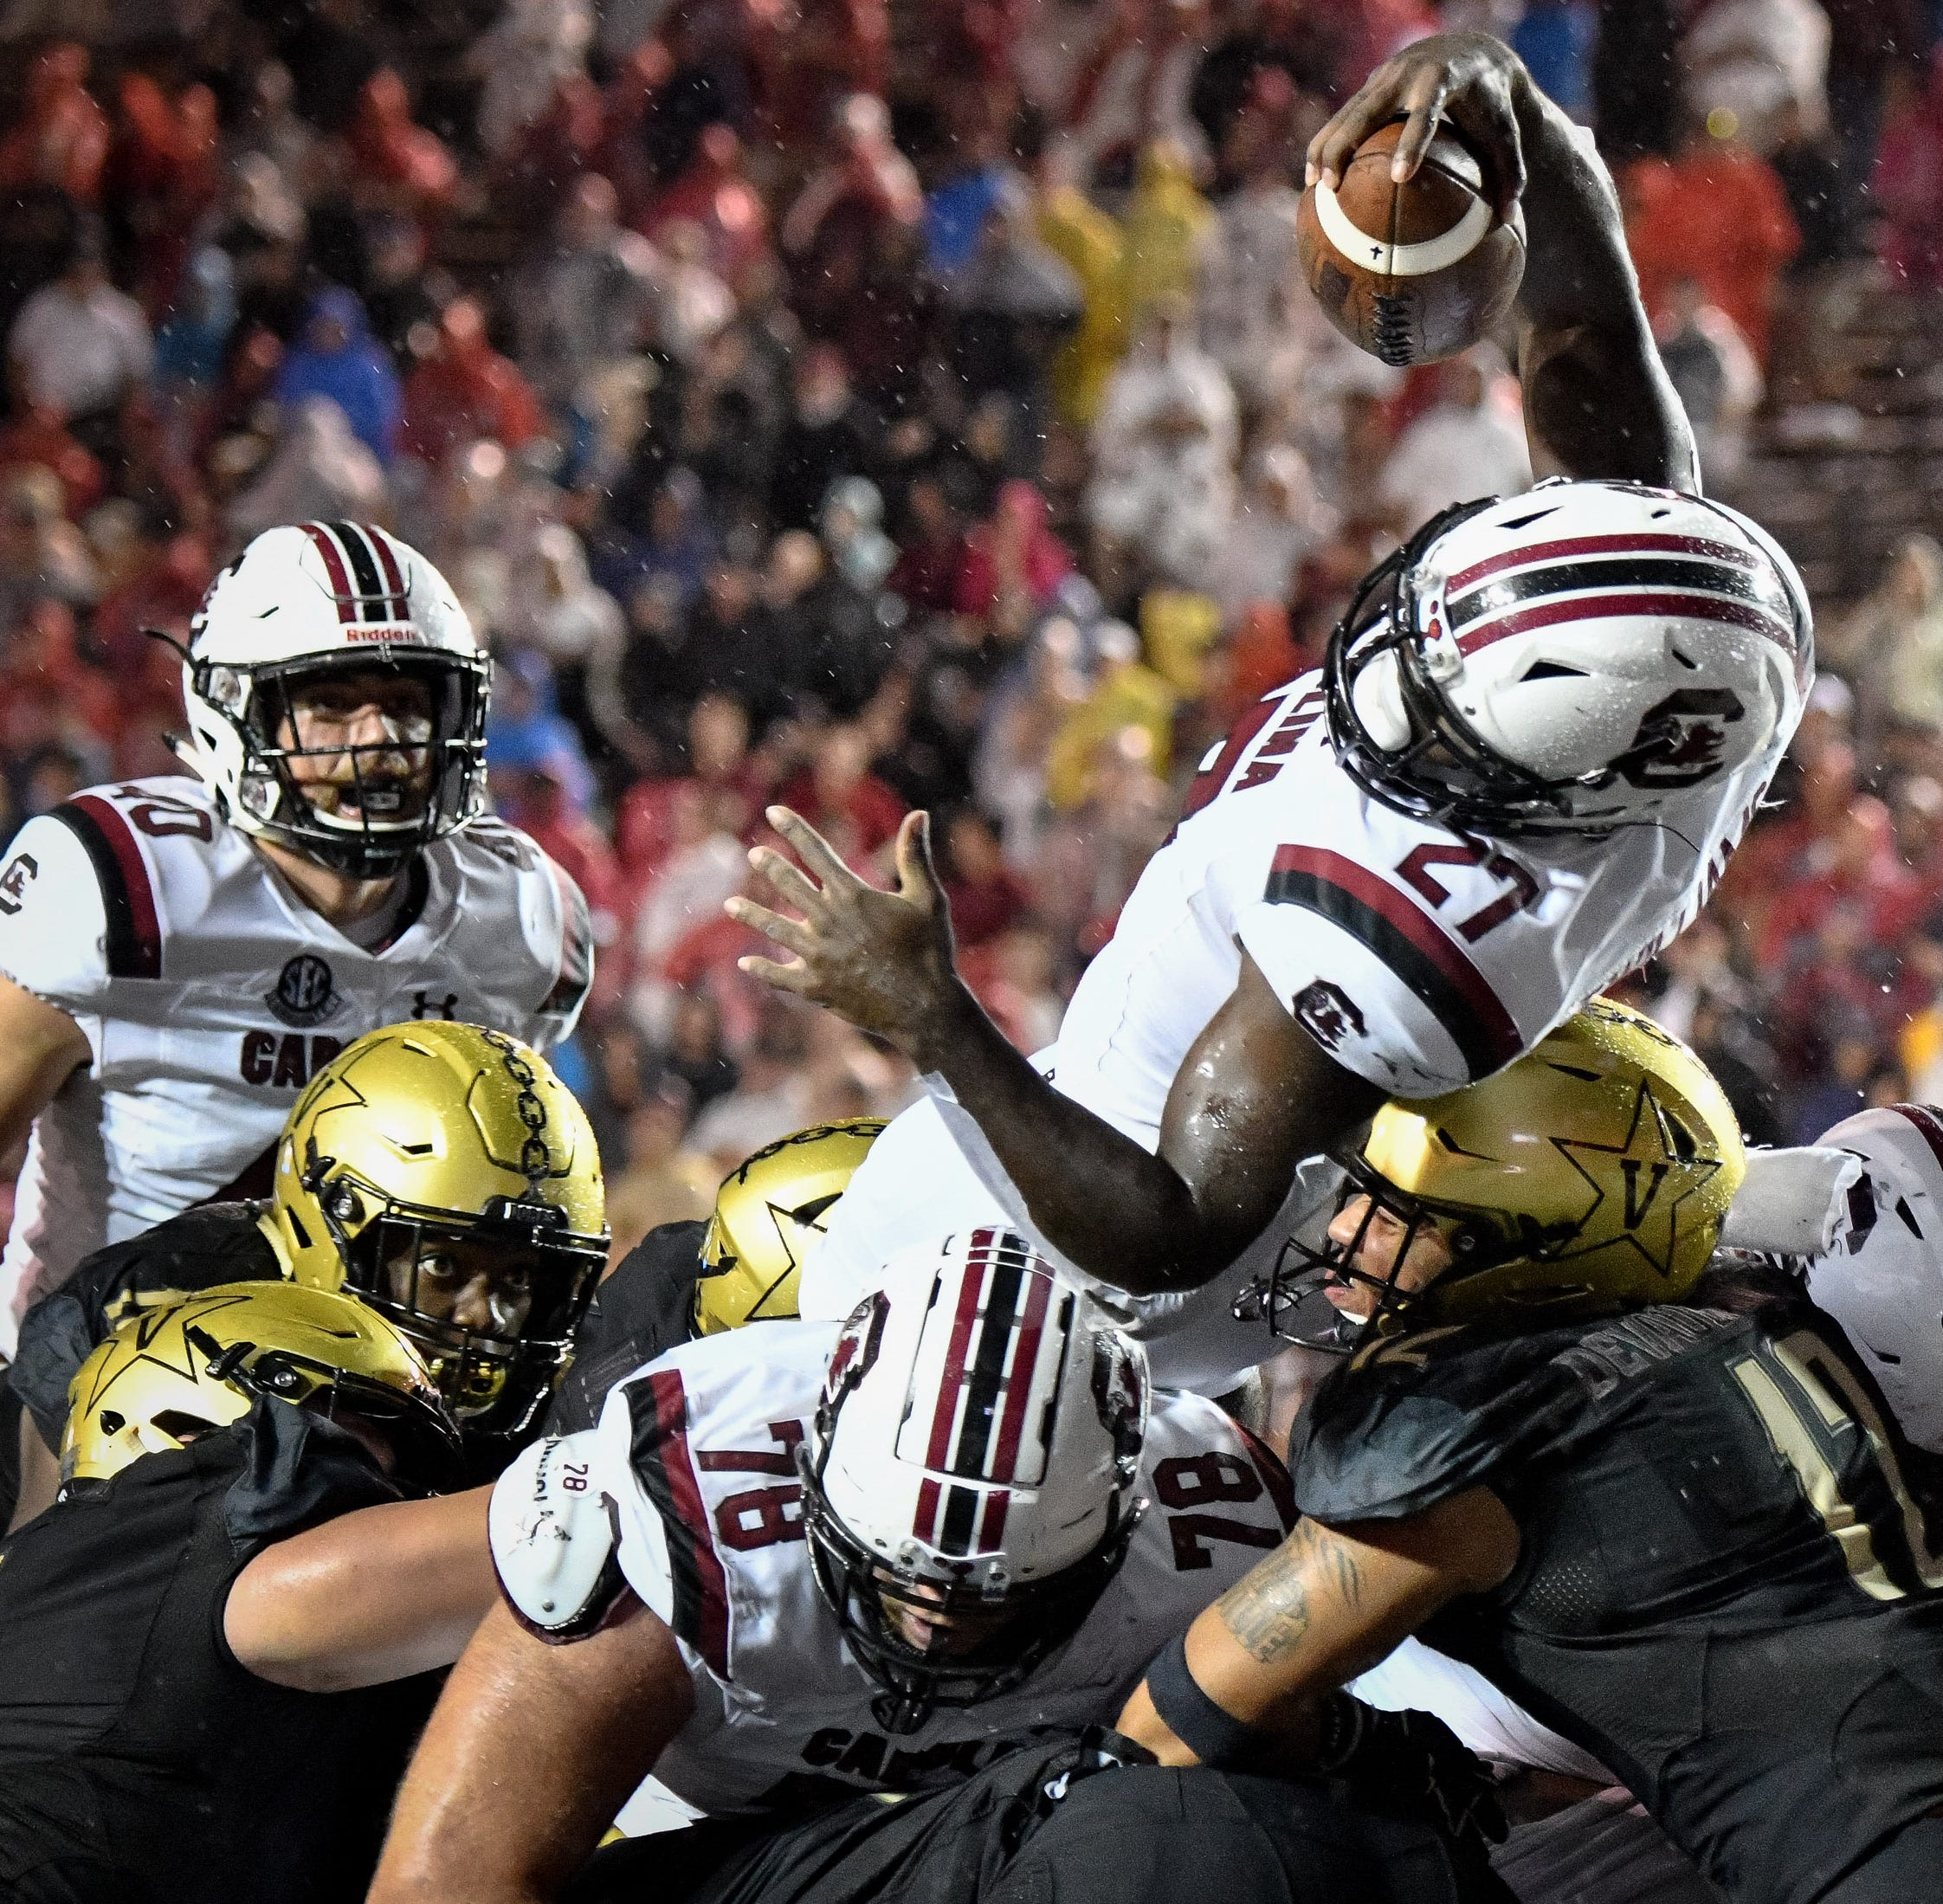 South Carolina 37, Vanderbilt 14: 5 things we learned in Commodores 'comedy of errors'